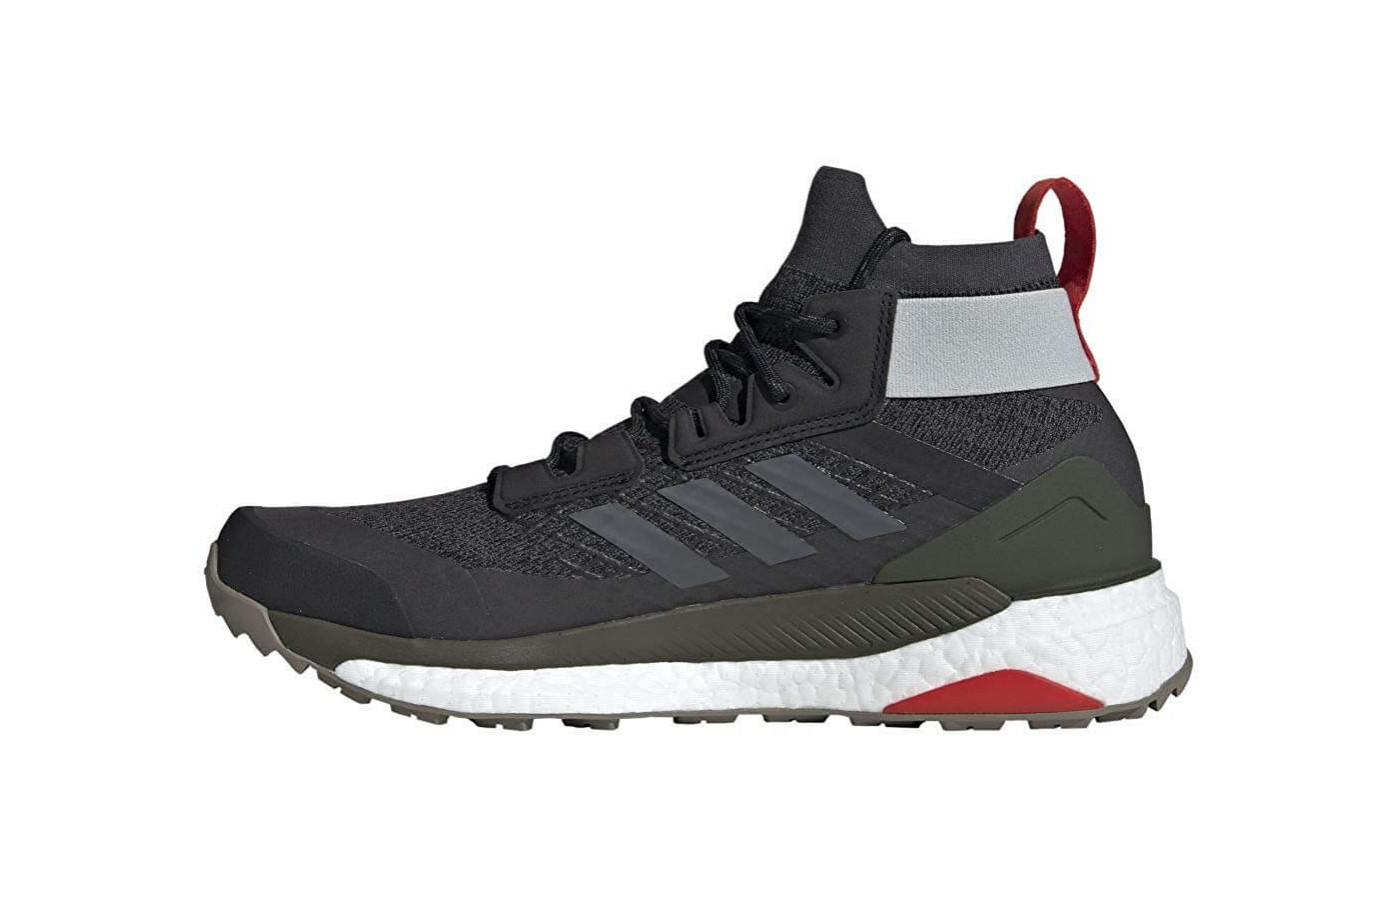 Adidas Outdoor Terrex Free Lateral